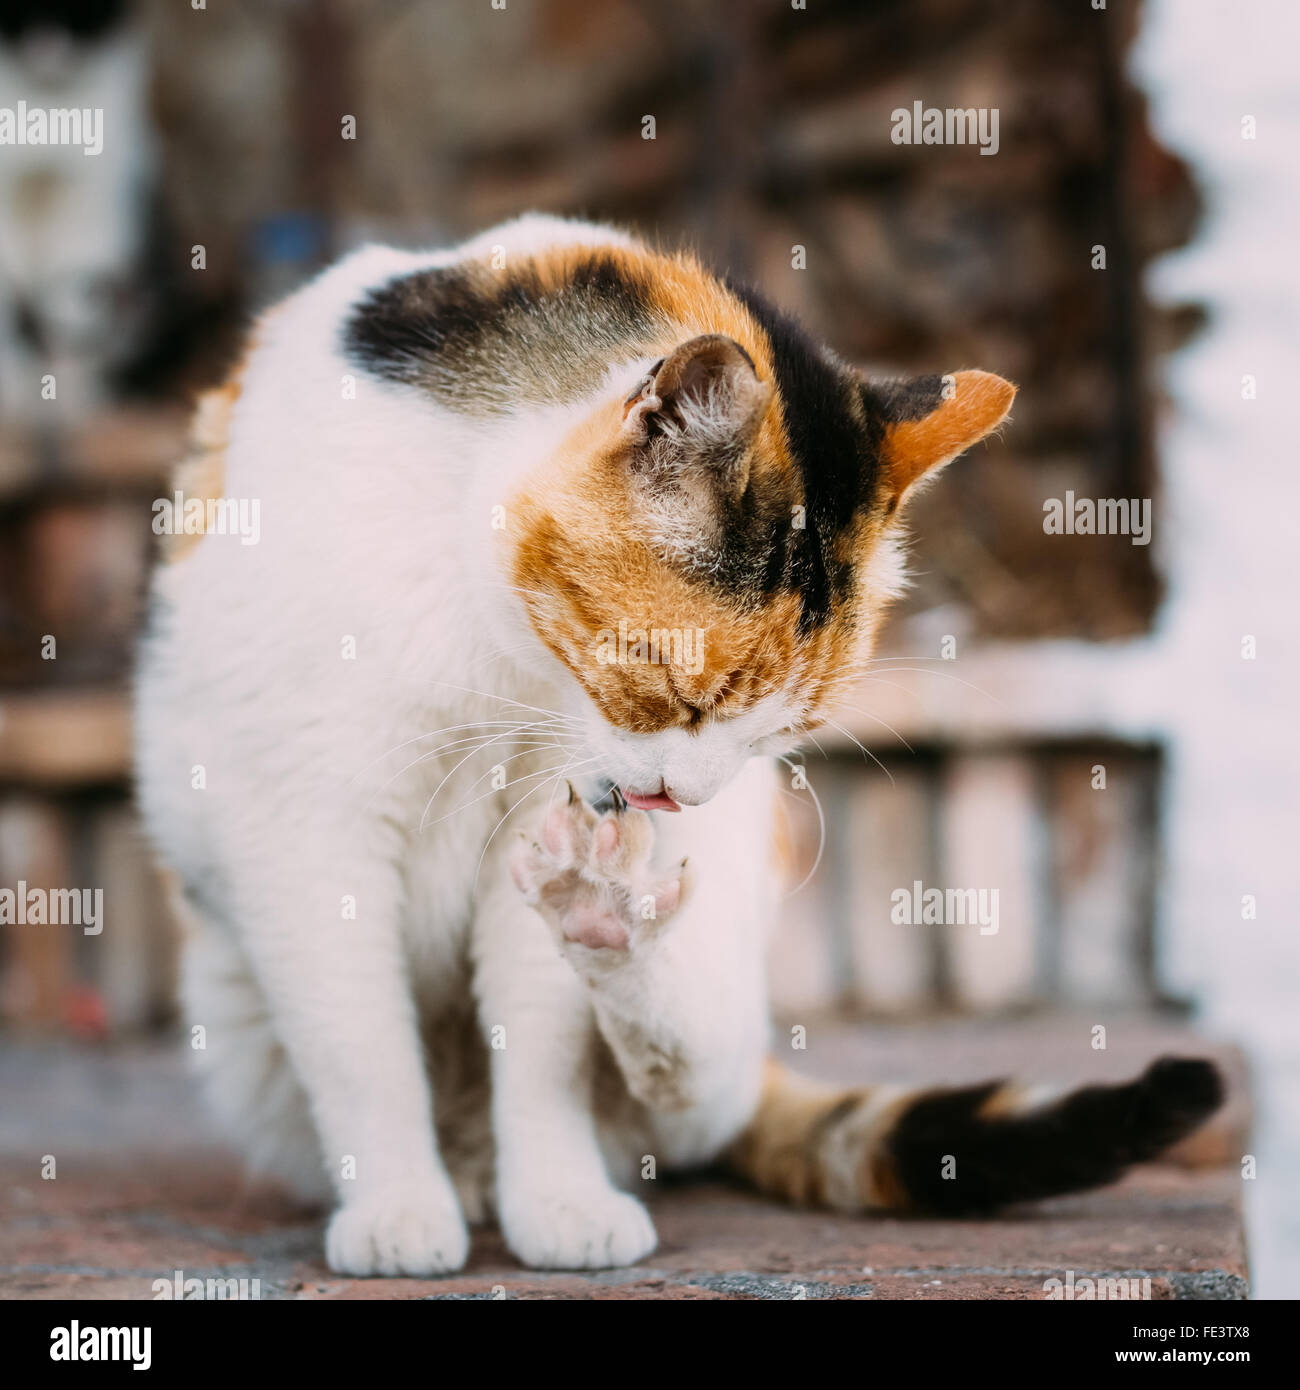 Cute Mongrel adult white cat with black spots and red washes itself Outdoor. Pet. Blurring background. - Stock Image